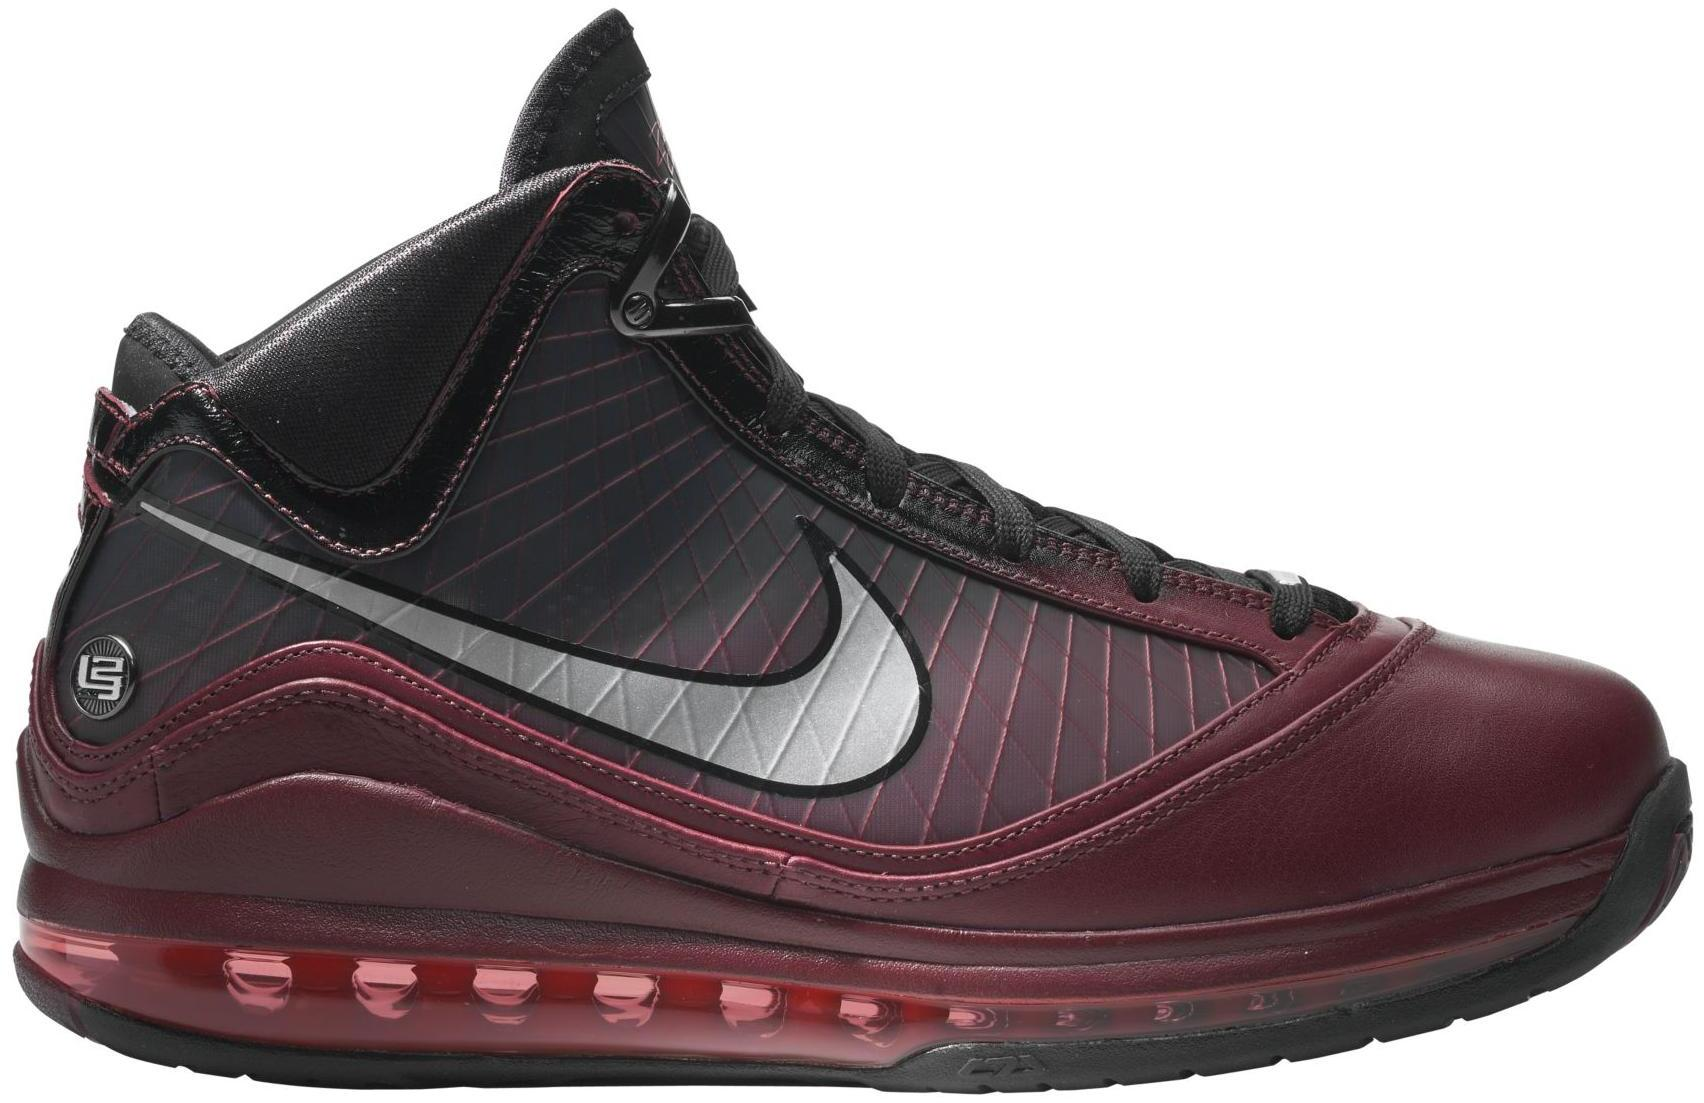 save off e415a 700c0 ... low price lebron 7 christmas c4aa9 1d0f8